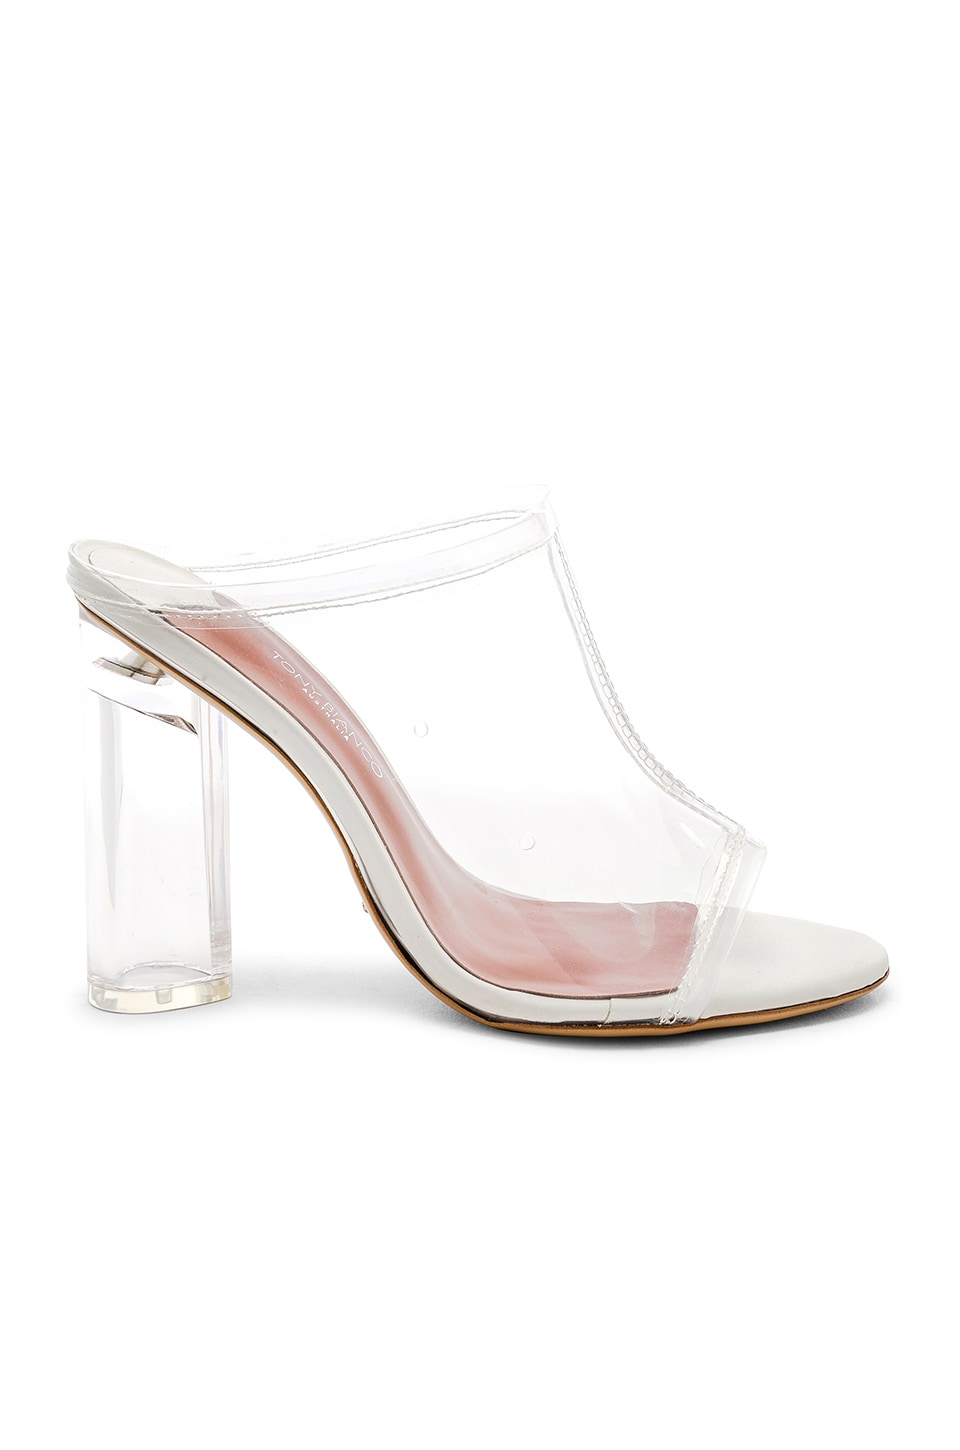 Tony Bianco Talise Mule in Clear Vynalite